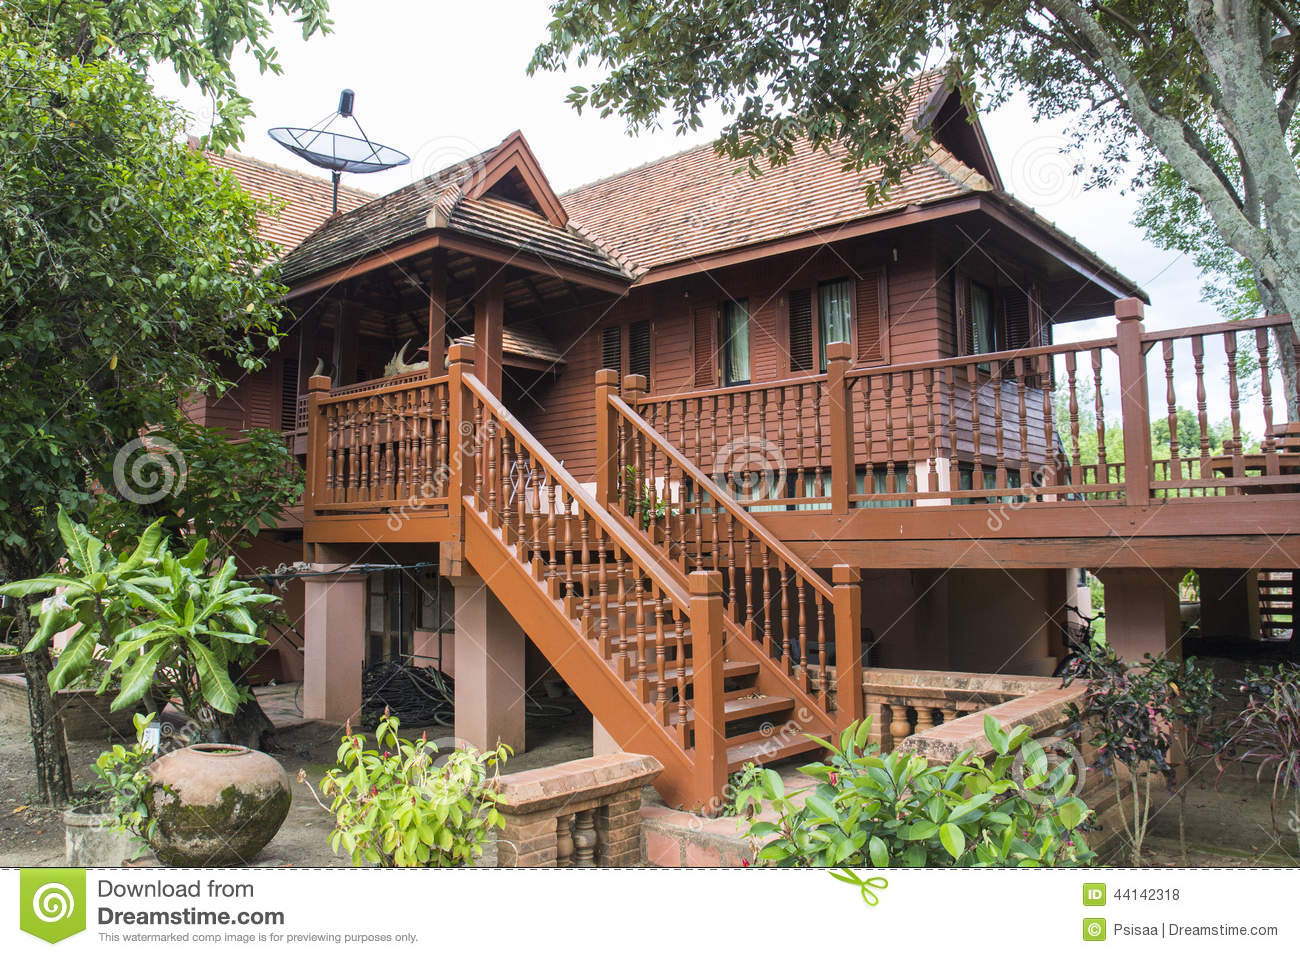 Traditional Thailand Wooden House Stock Photo - Image: 44142318